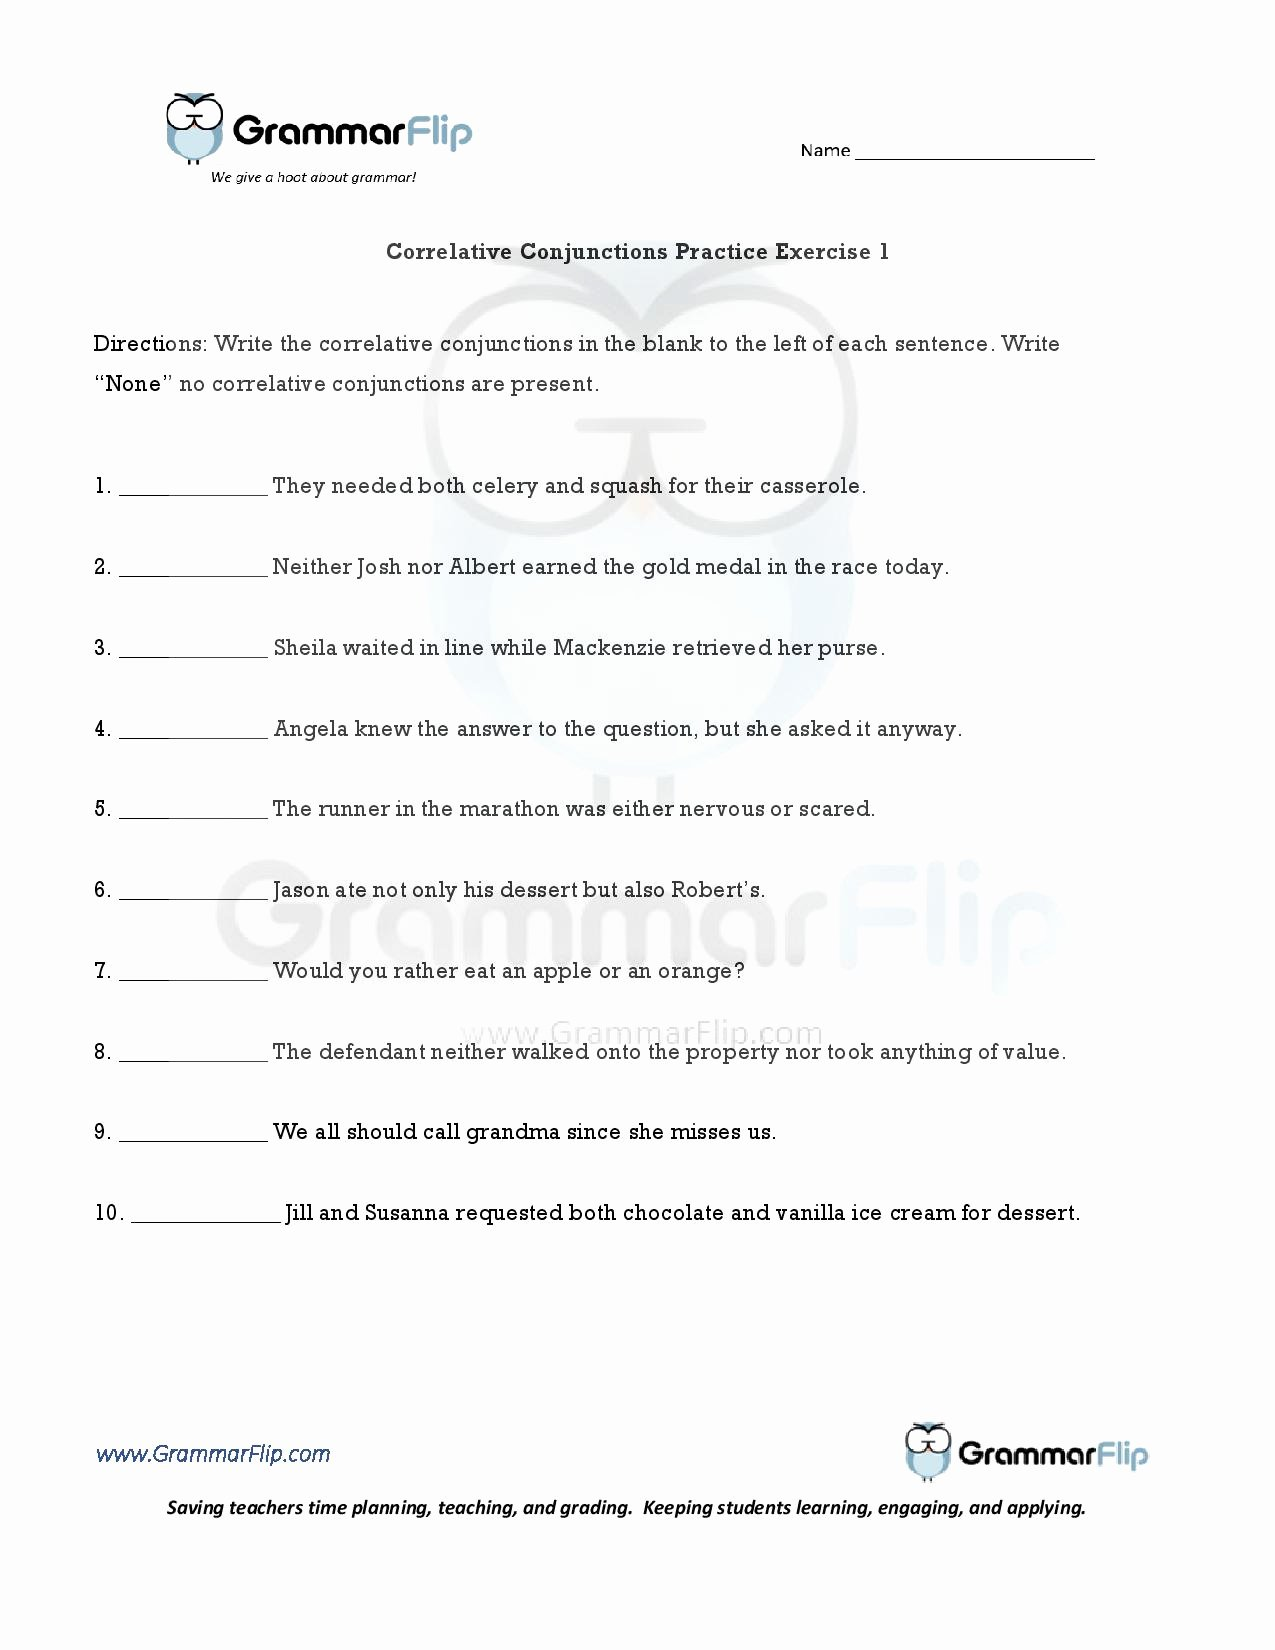 Correlative Conjunctions Worksheets with Answers Inspirational Correlative Conjunctions